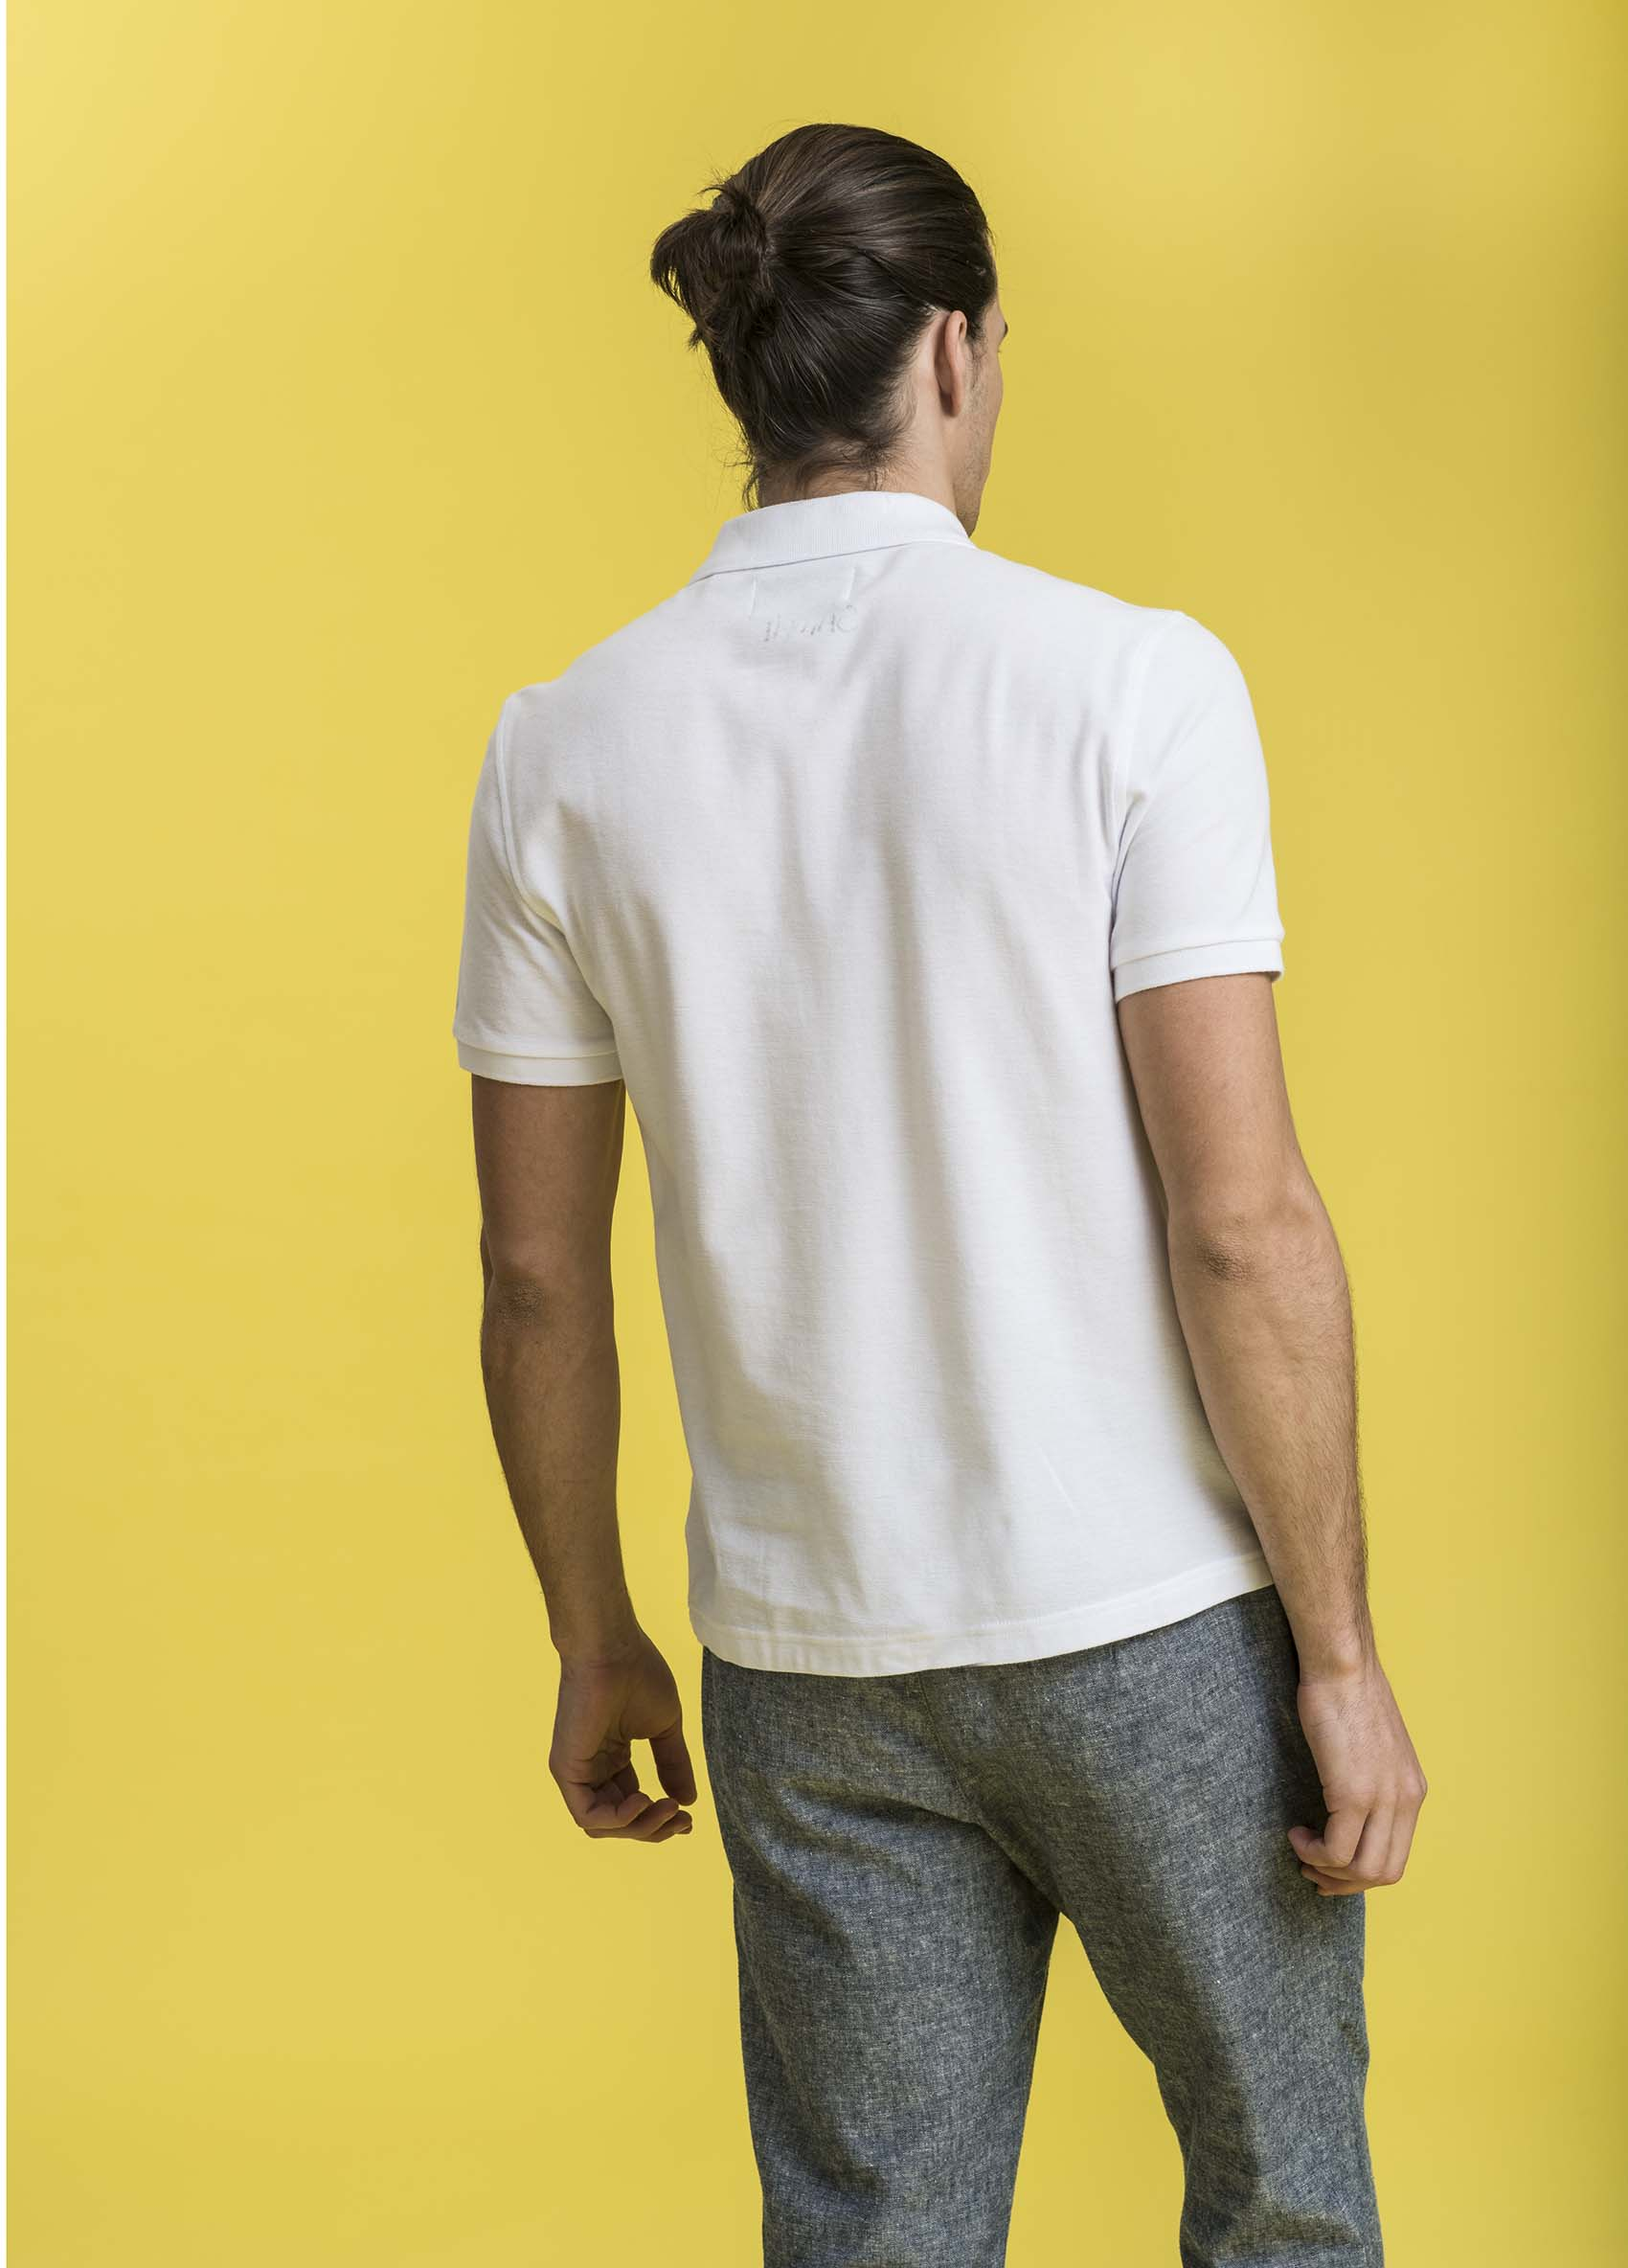 penguin_s/s-a/o-embroidered-penguin-polo_37-27-2020__picture-12022